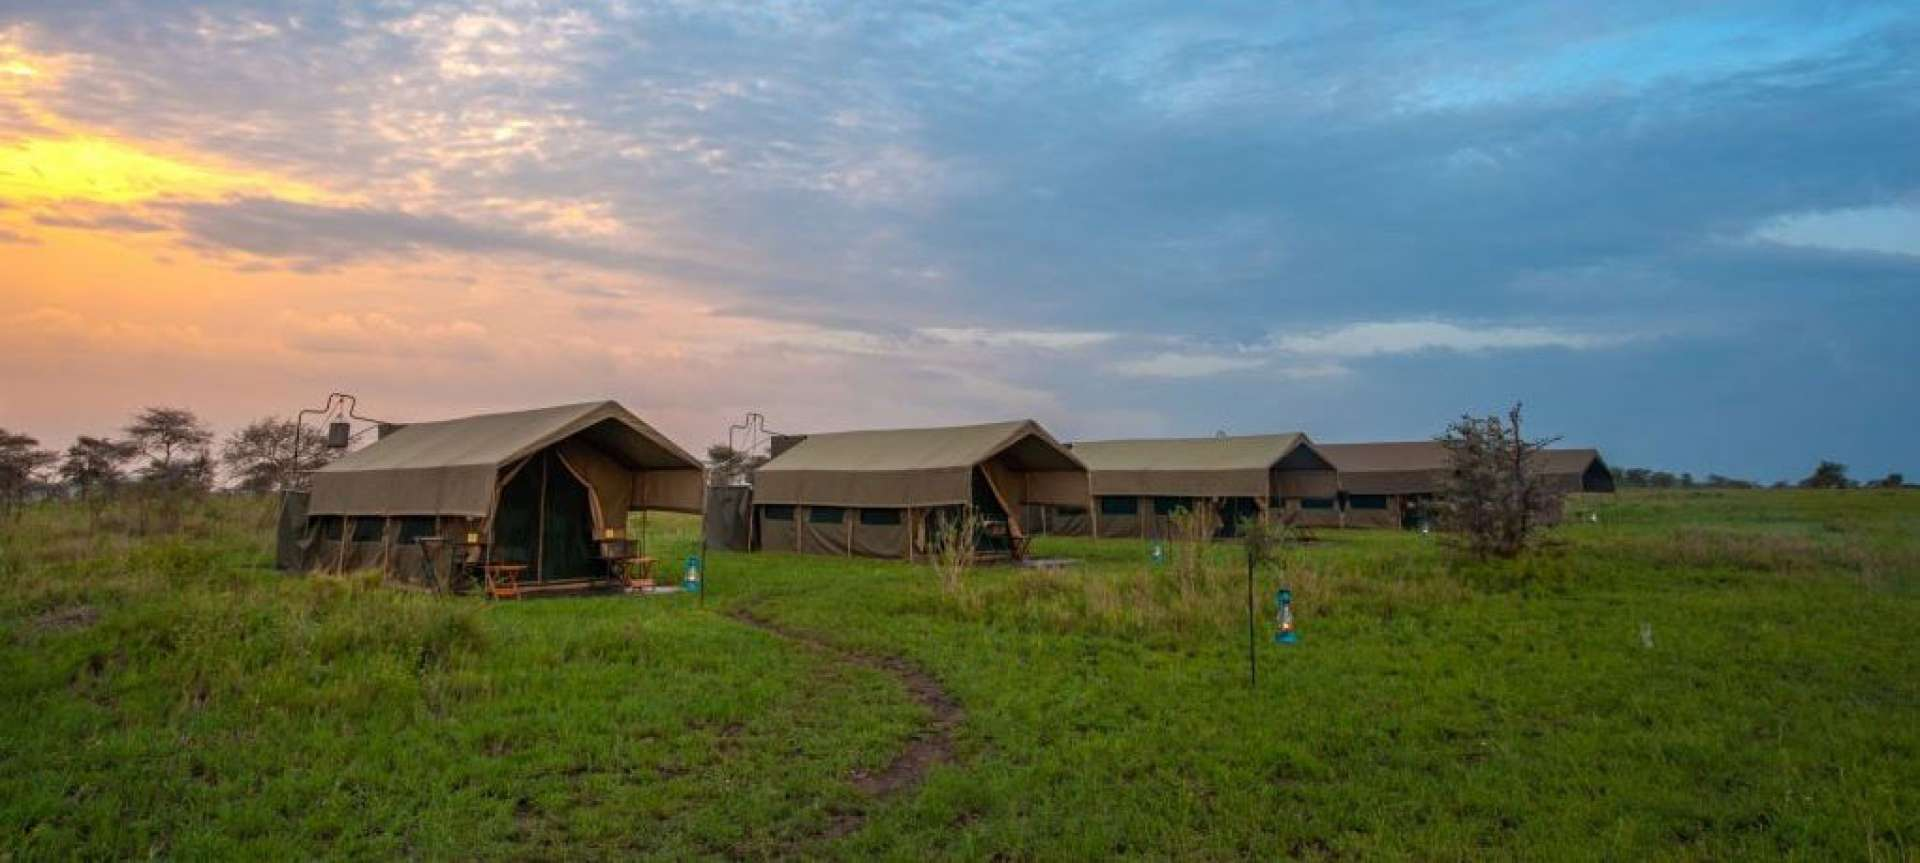 14 Top Best Tented Camps In Serengeti National Park For Your Vacation 2021